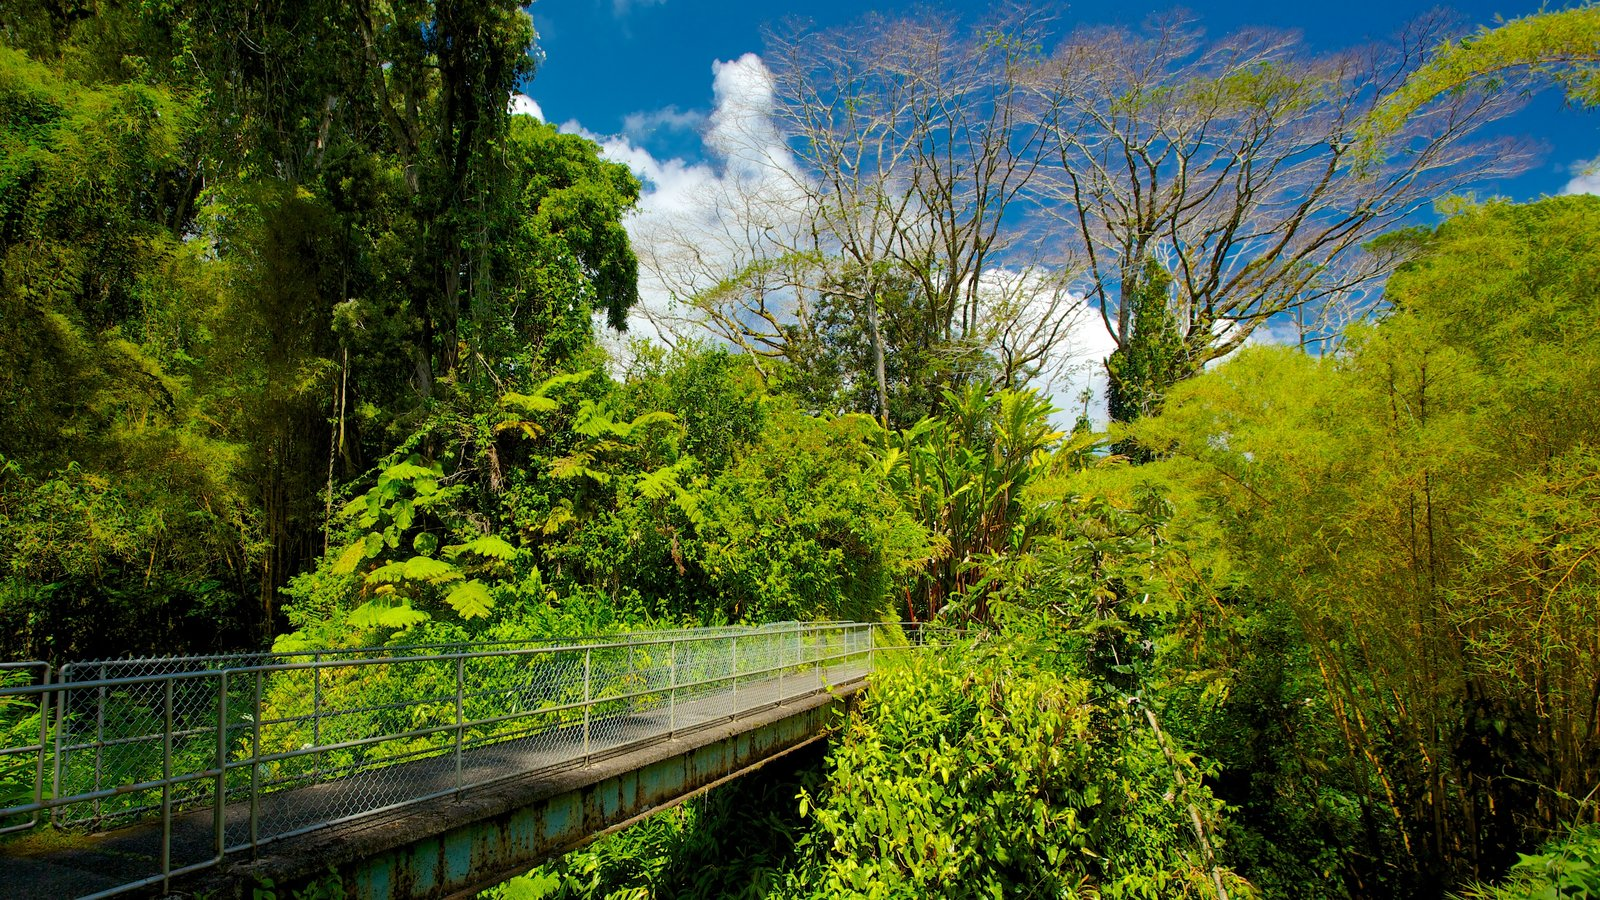 Akaka Falls showing a bridge, landscape views and forest scenes